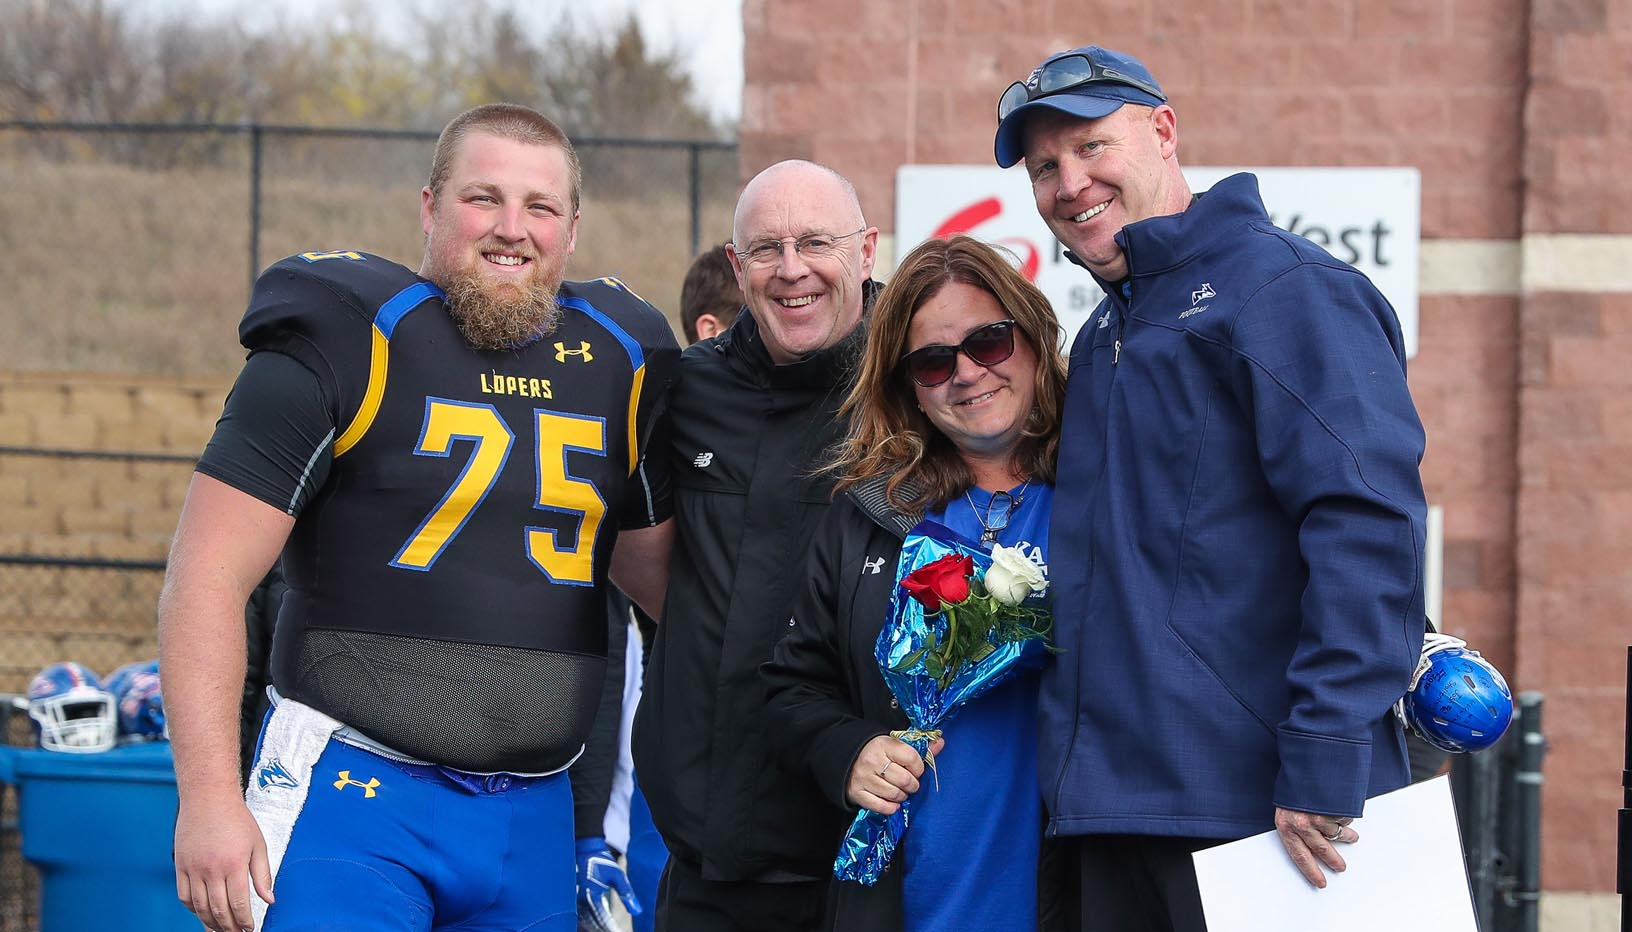 David Squiers, who finished his career last season, was a standout offensive lineman for the UNK football team. He is among four members of the Squiers family to compete as Lopers for UNK, where his dad Rick is the head volleyball coach.